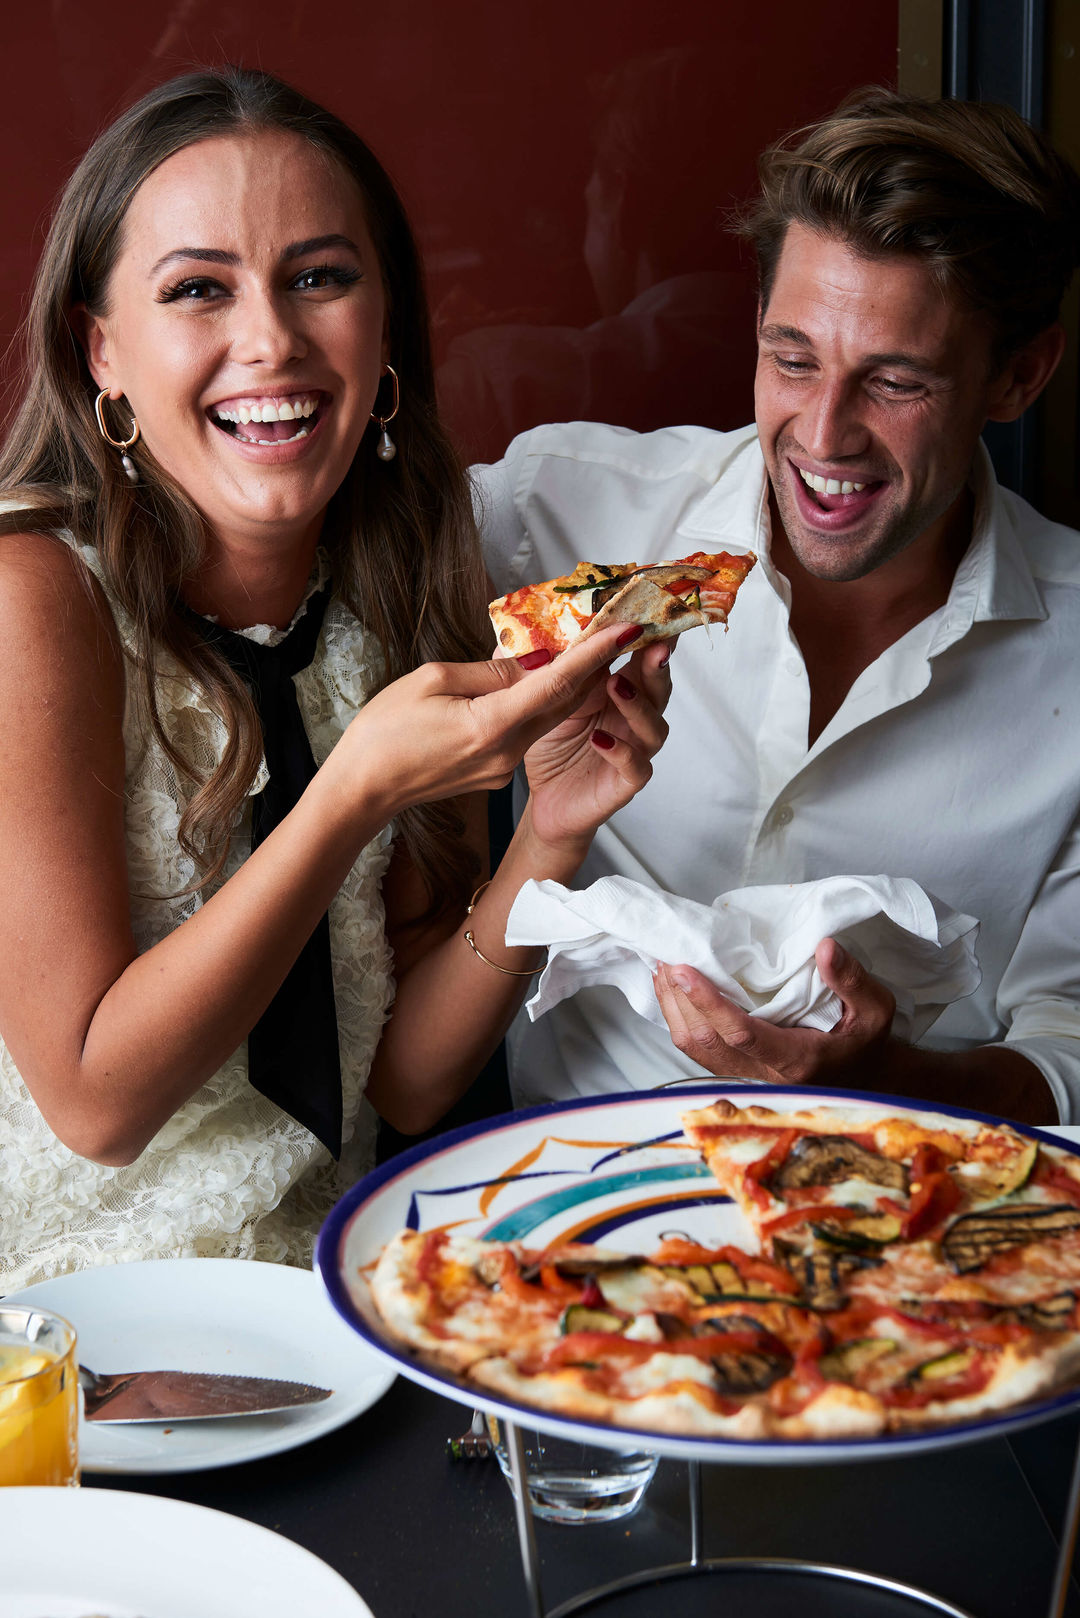 Couple taking a slice of pizza.